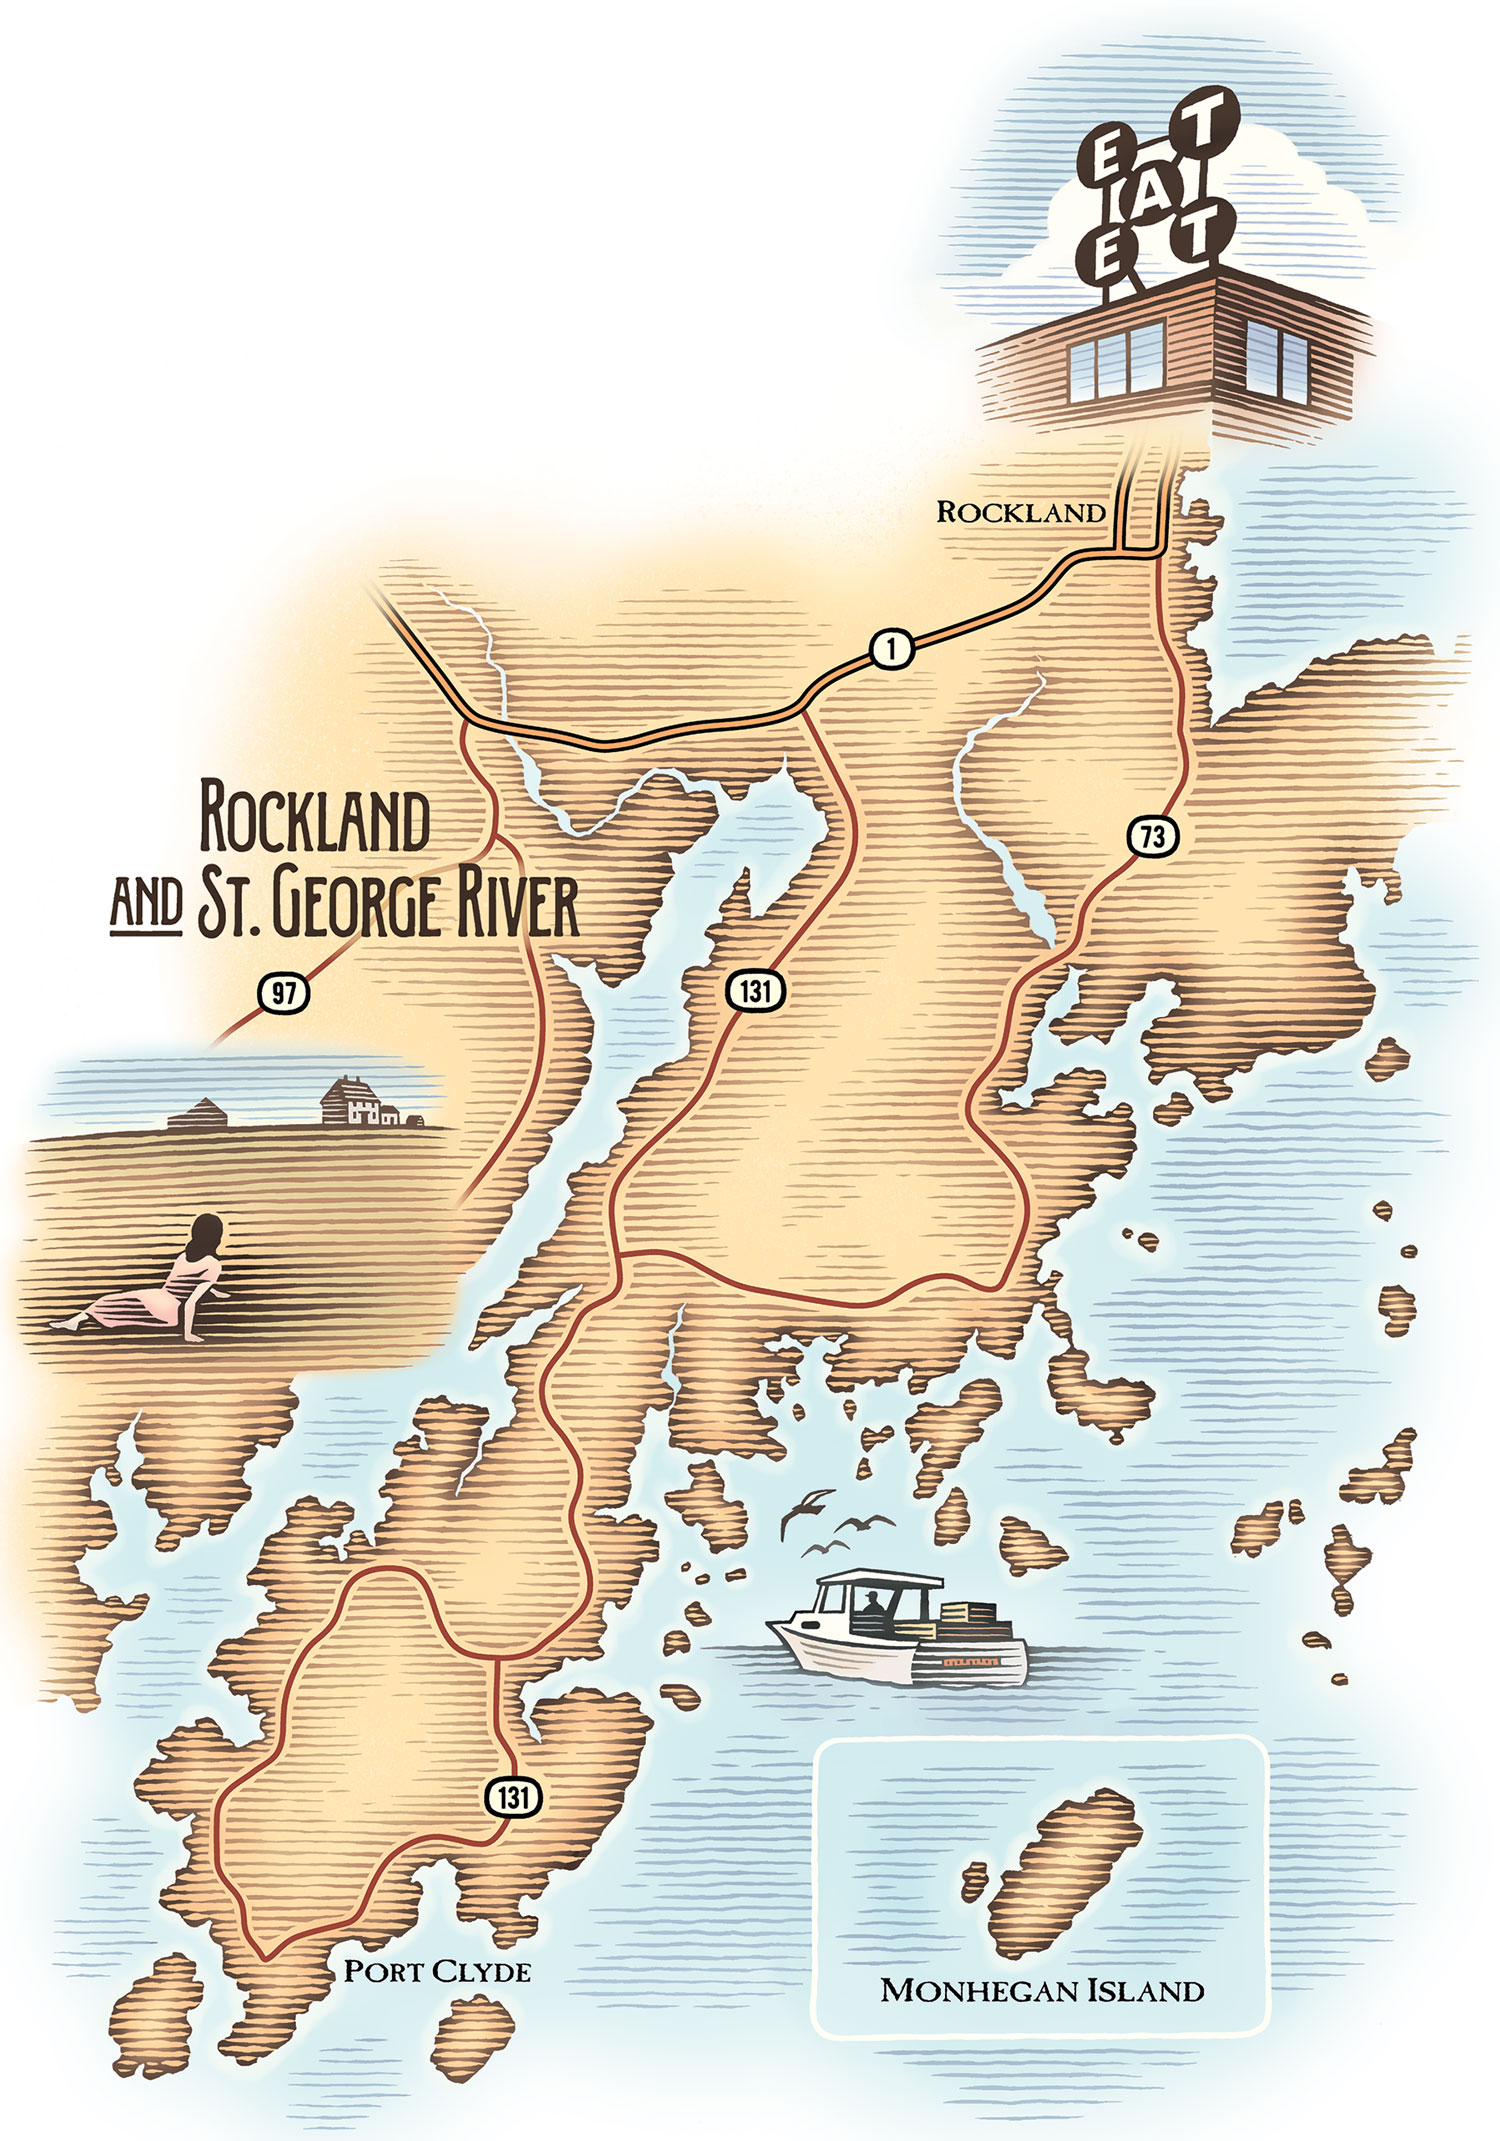 Rockland and St. George River map